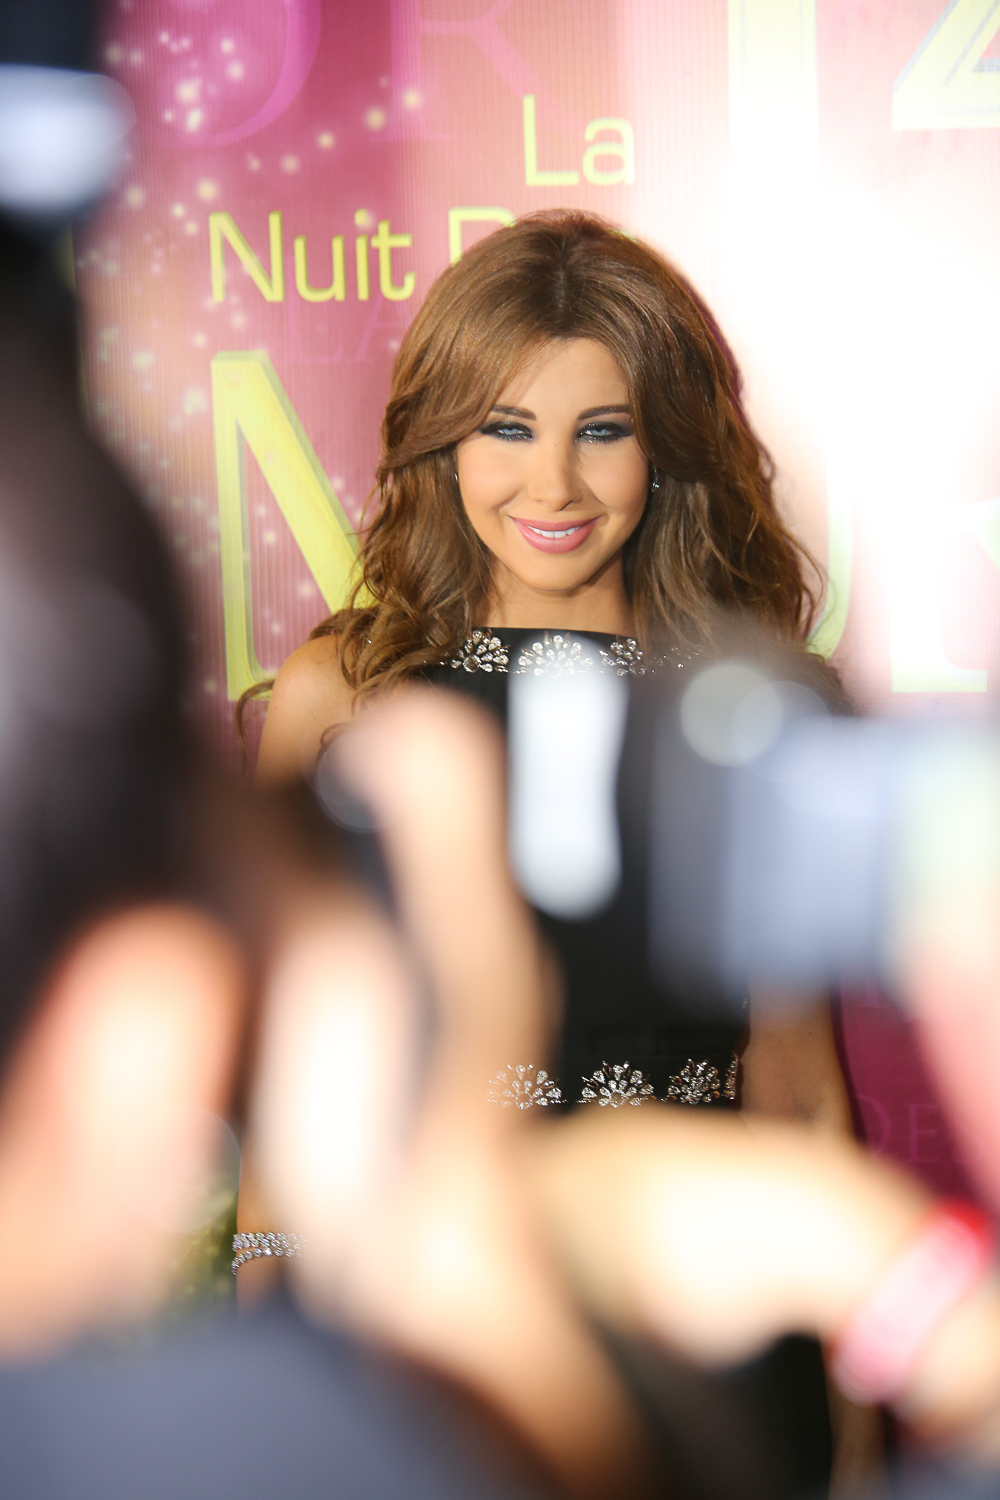 nancy ajram by Jose Daou